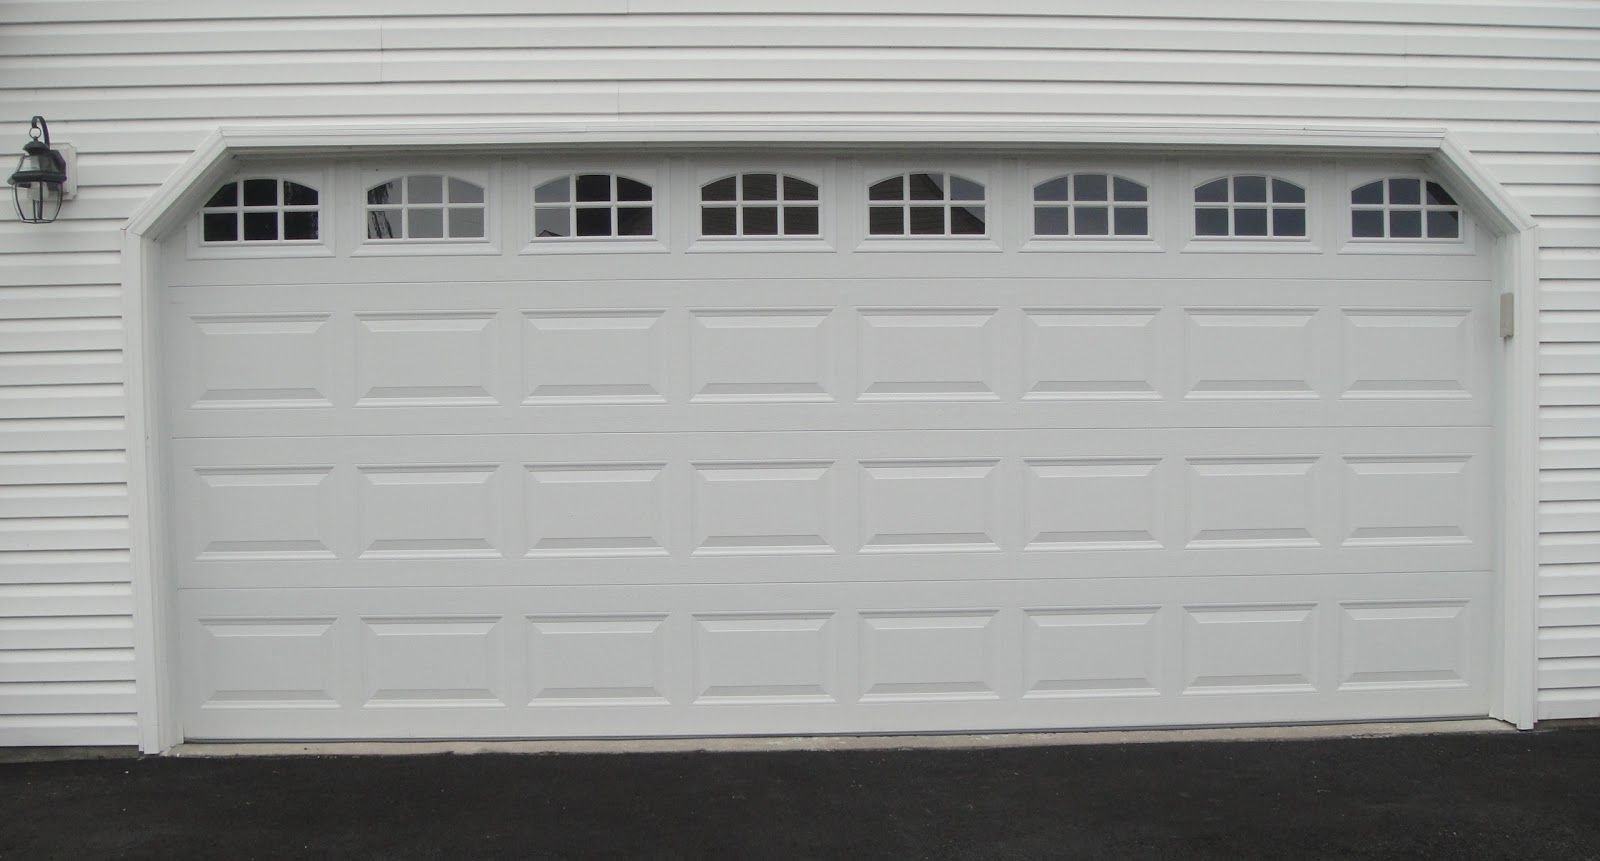 Best 8 Foot Garage Door Opener Regarding Household